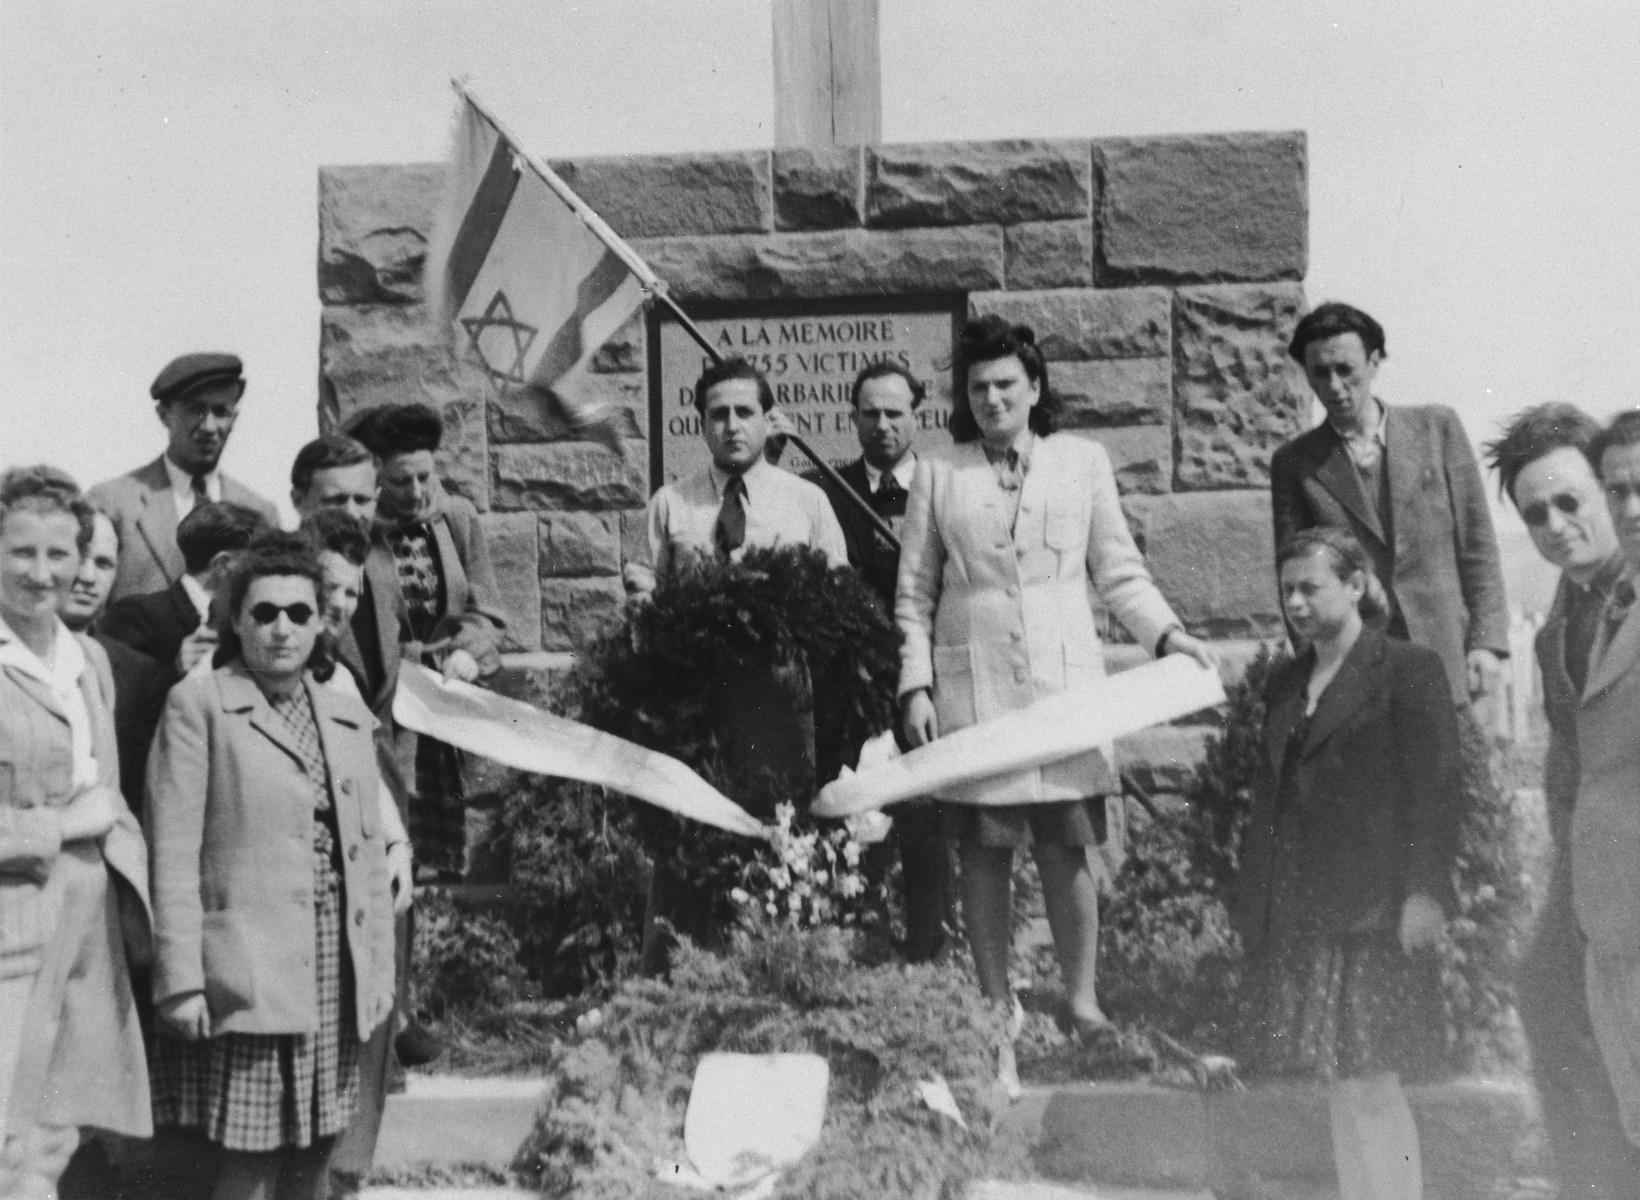 Jewish survivors lay a wreath at a monument to the victims of the Dautmergen subcamp of Natzweiler on the first anniversary of the liberation.  Among those pictured is Kiwa Dajches (in center group on the left).